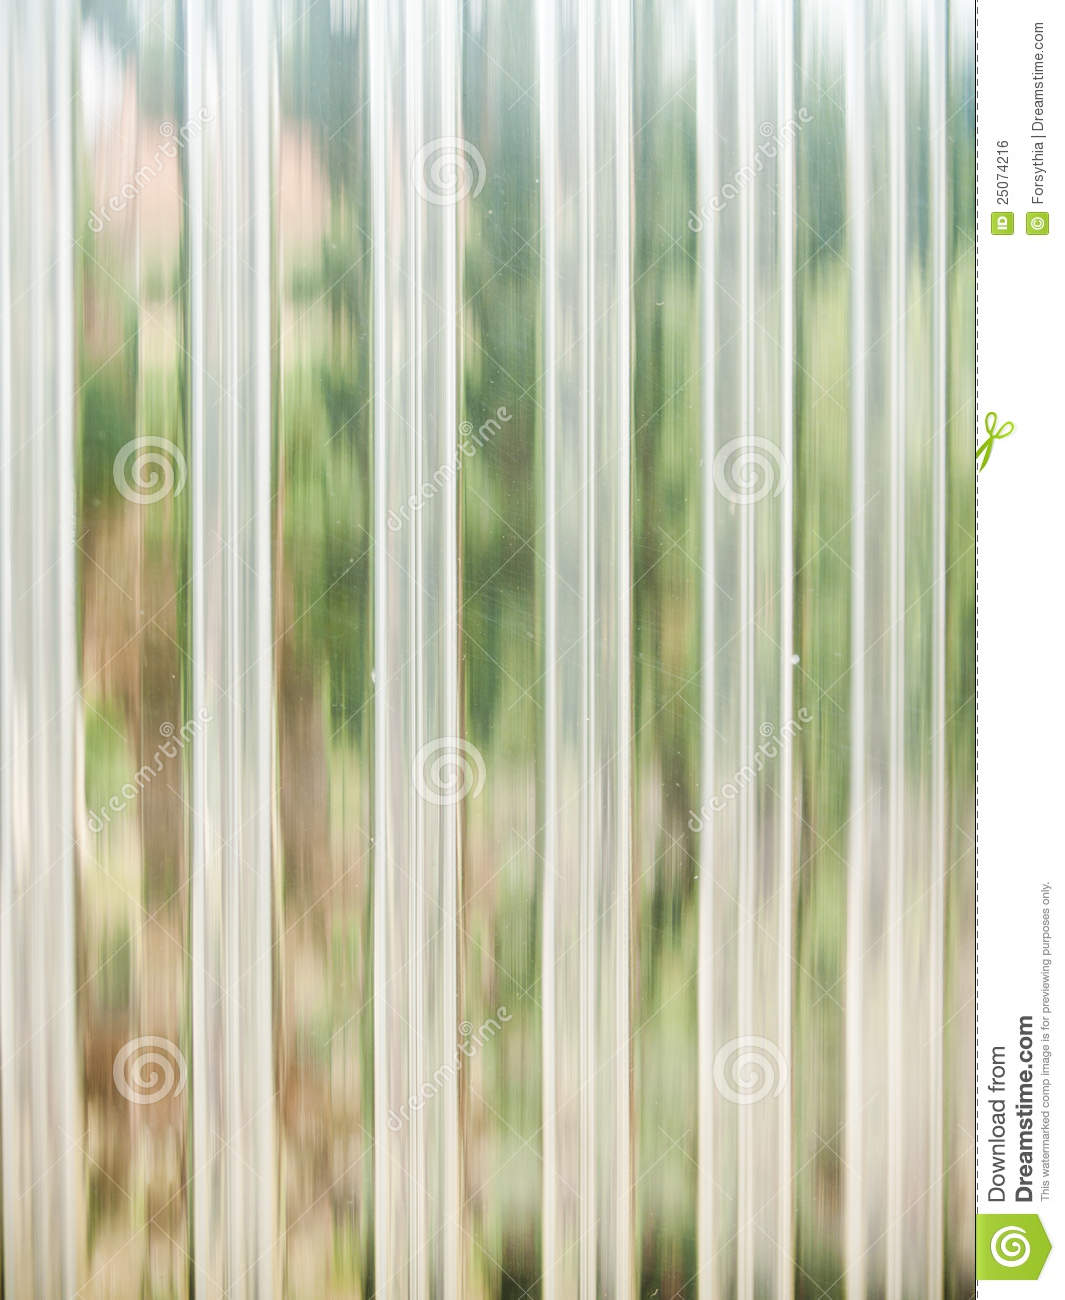 Image Result For Polycarbonate Roof Panels